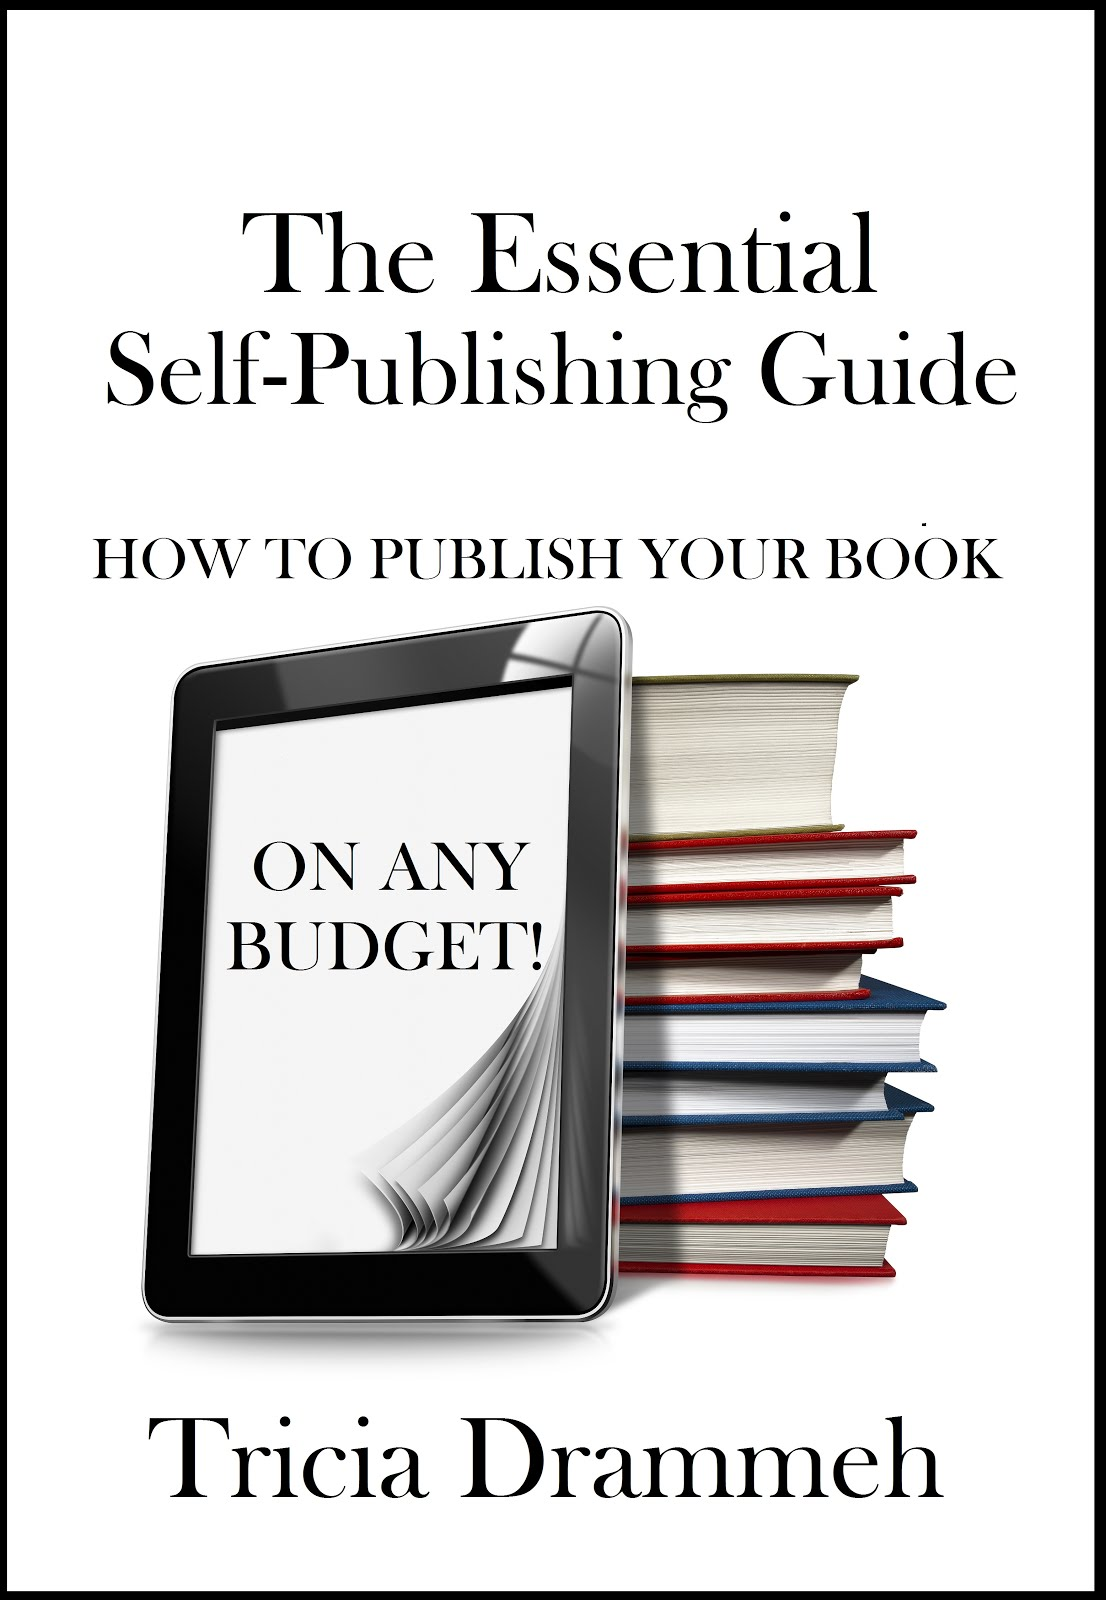 Need help publishing your book?